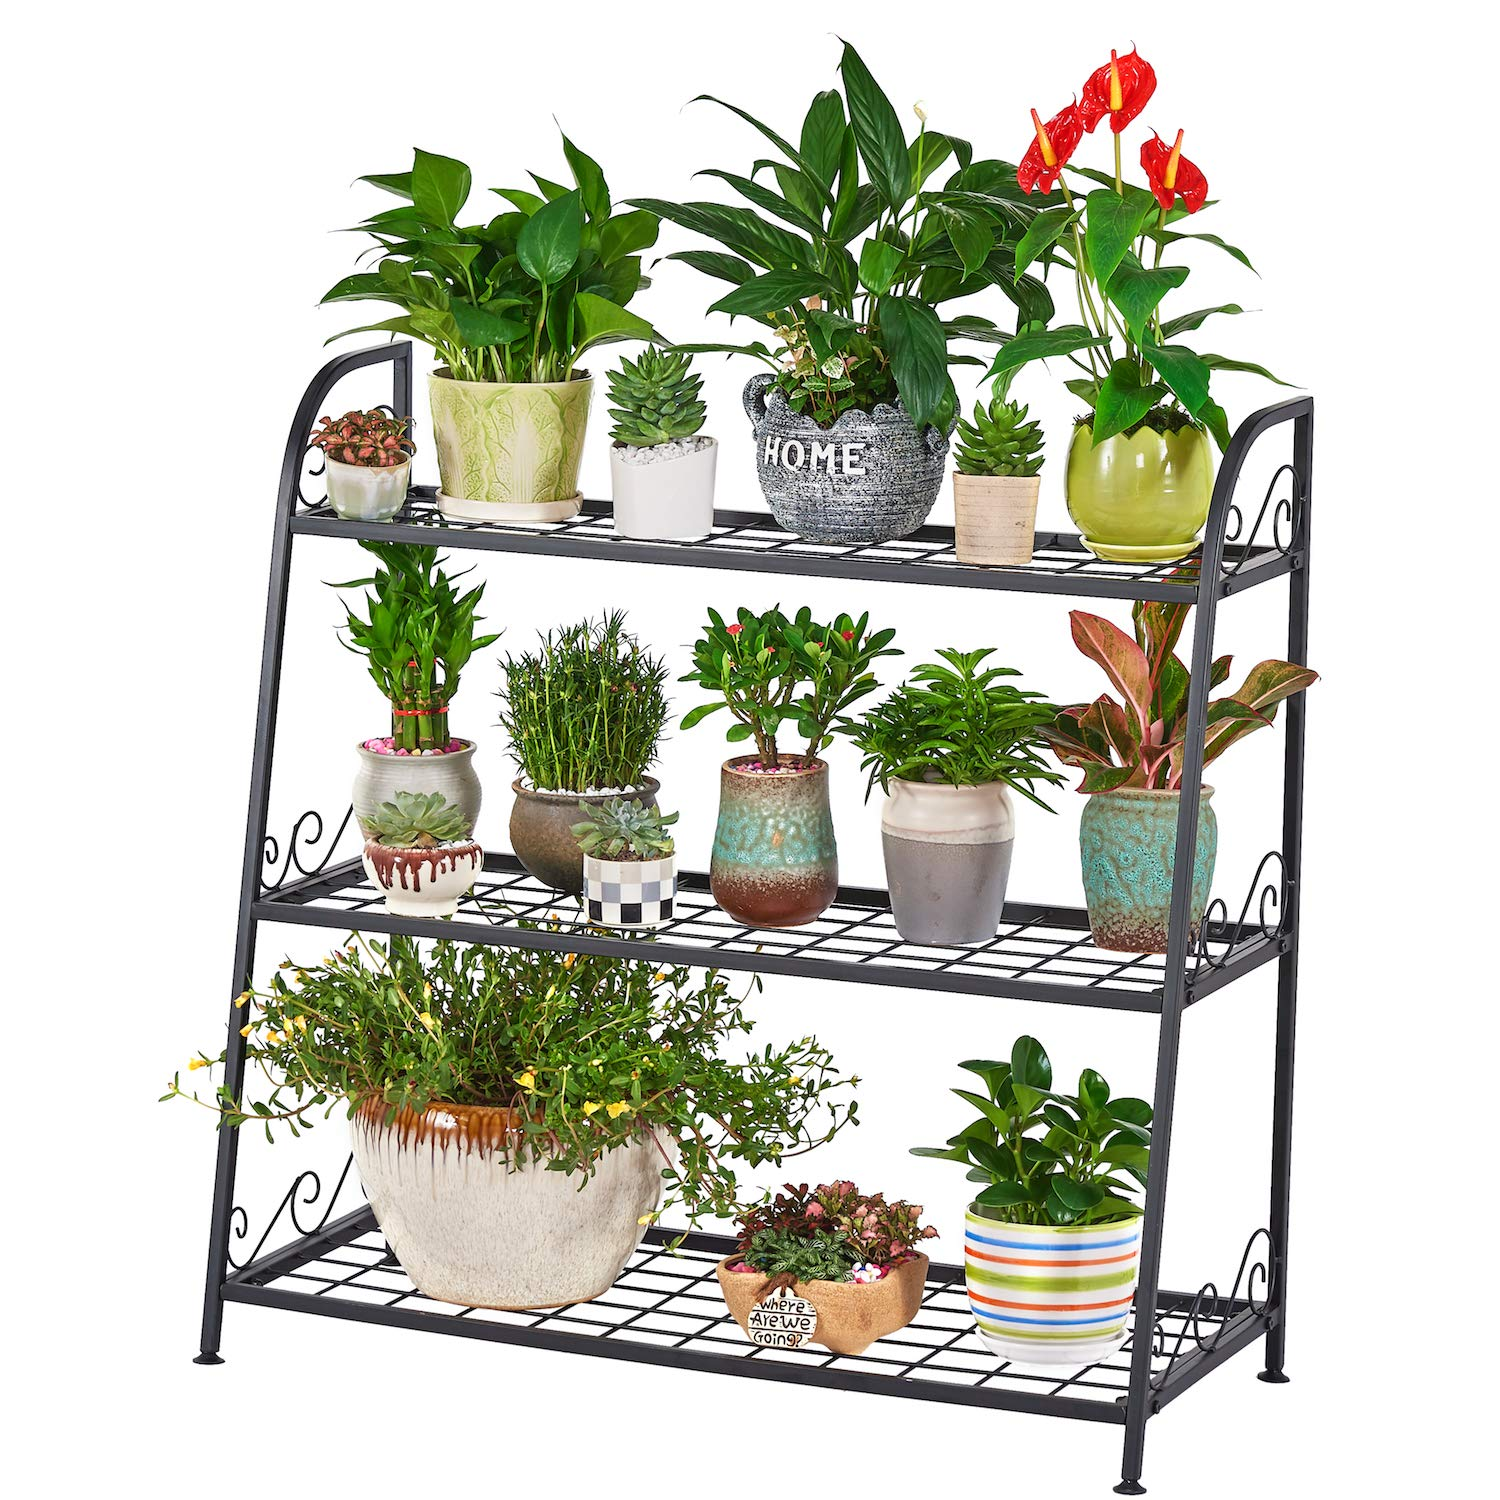 FaithLand 3-Tier Indoor/Outdoor Metal Plant Stand, Flower Pots Holder, Plant Display Rack, Stand Shelf, Shoe Organizer, Utility Storage Organizer Rack